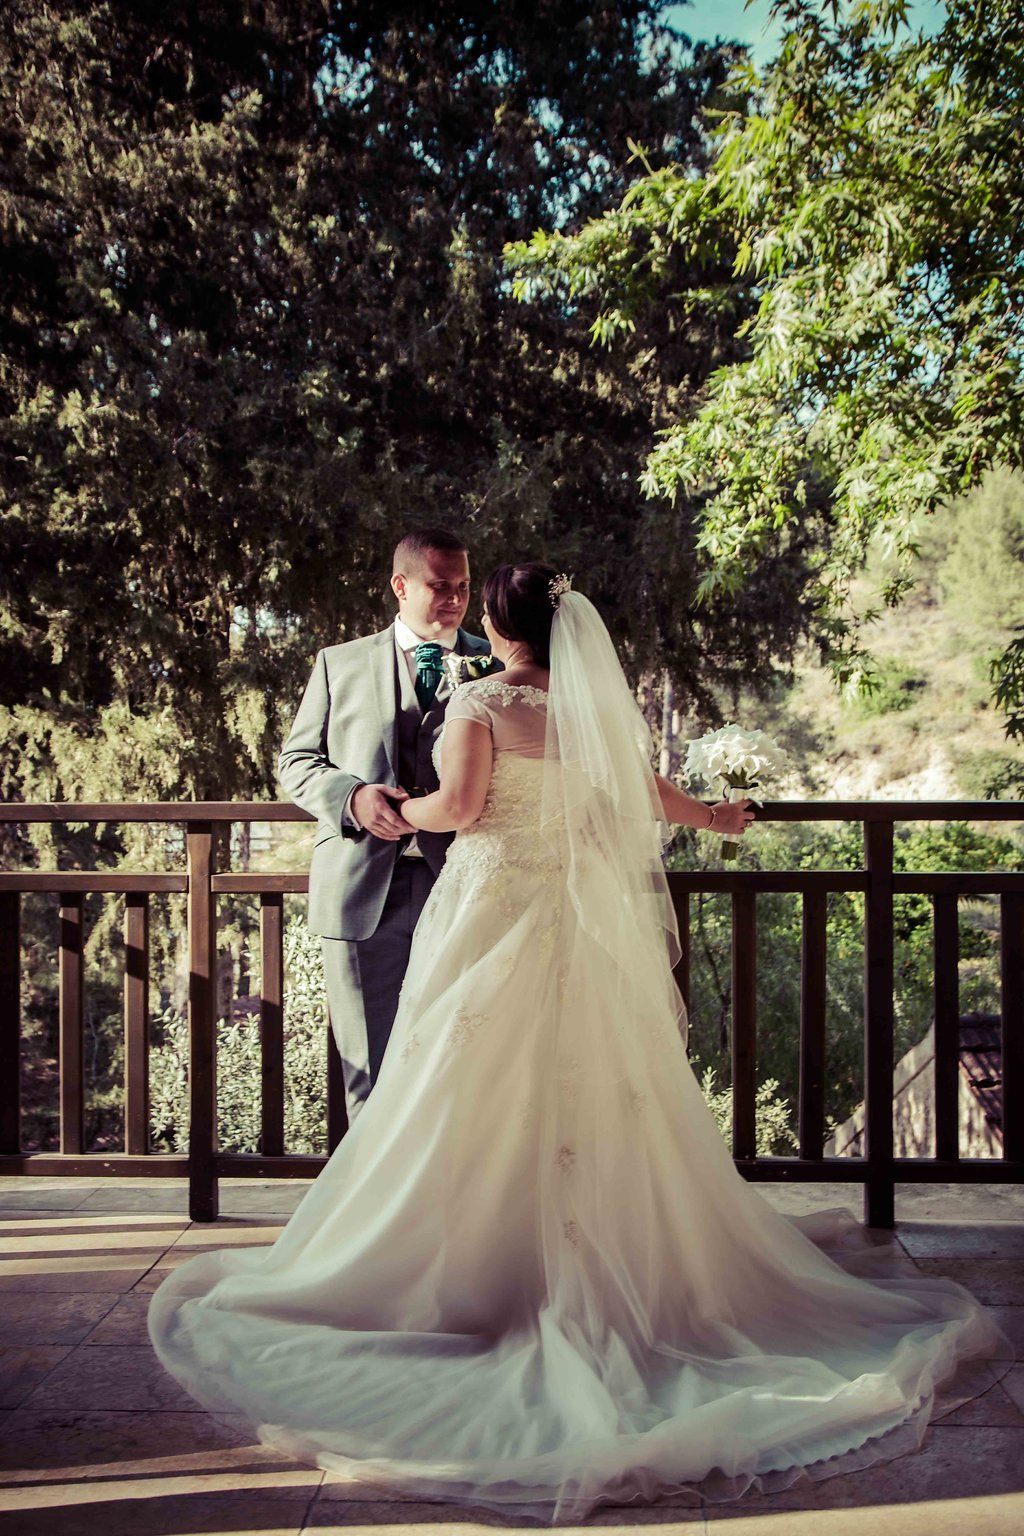 Checkout Our Work On Facebook Pinterest Instagram And Read Our Reviews On Google Review Check Out In 2020 Cyprus Wedding Wedding Videographer Wedding Photographers